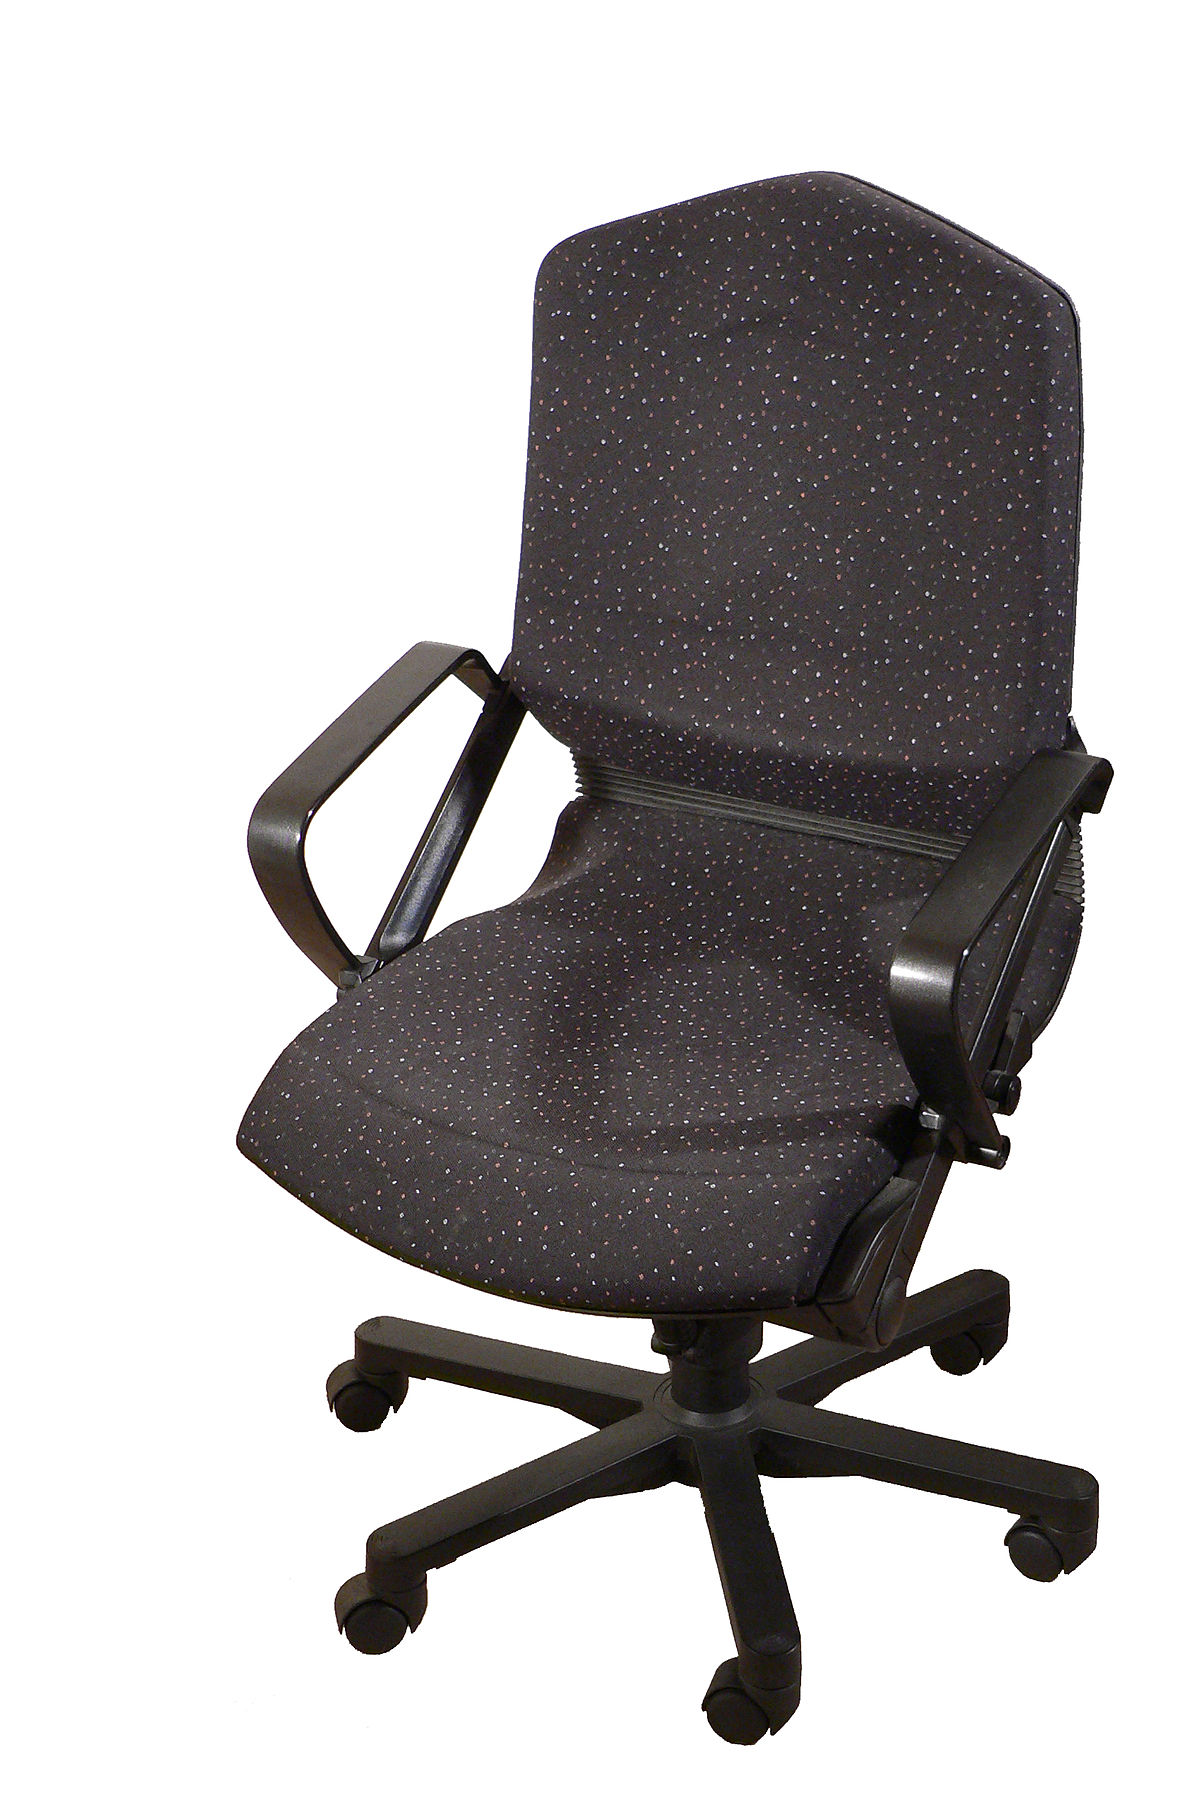 office chair Wiktionary